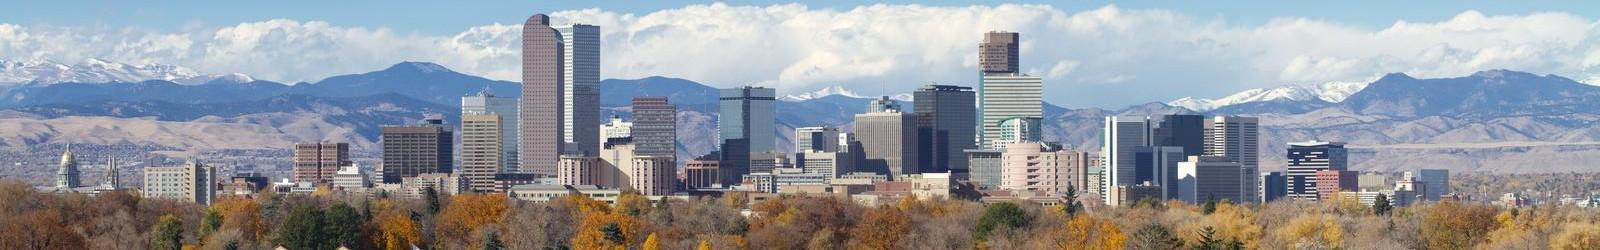 Autism and Asperger's therapists in Denver, Colorado